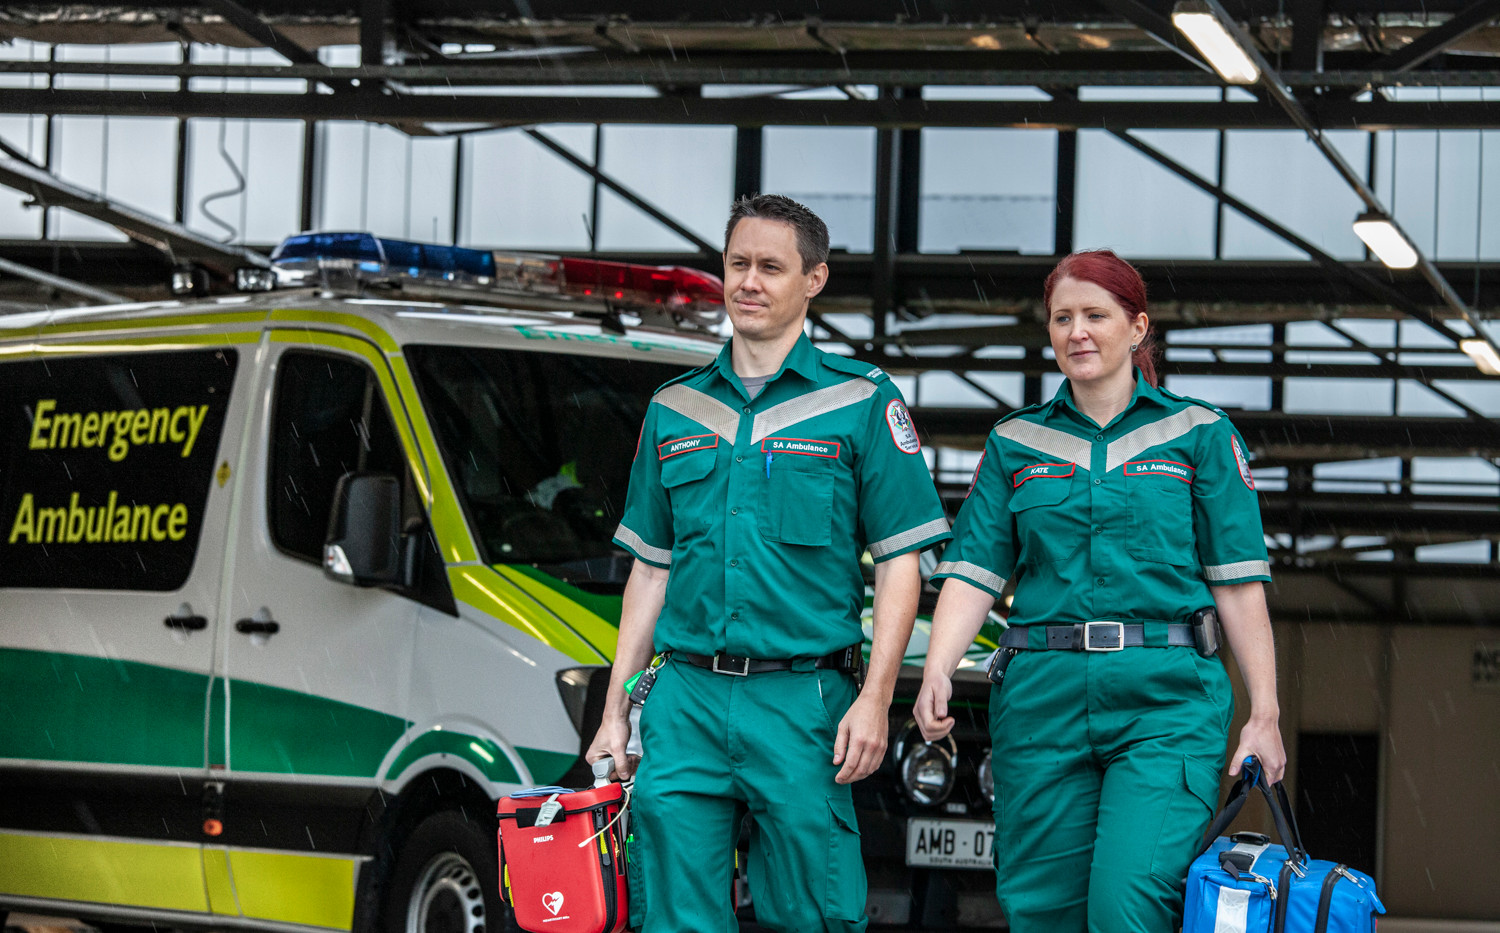 South Australian Ambulance Service